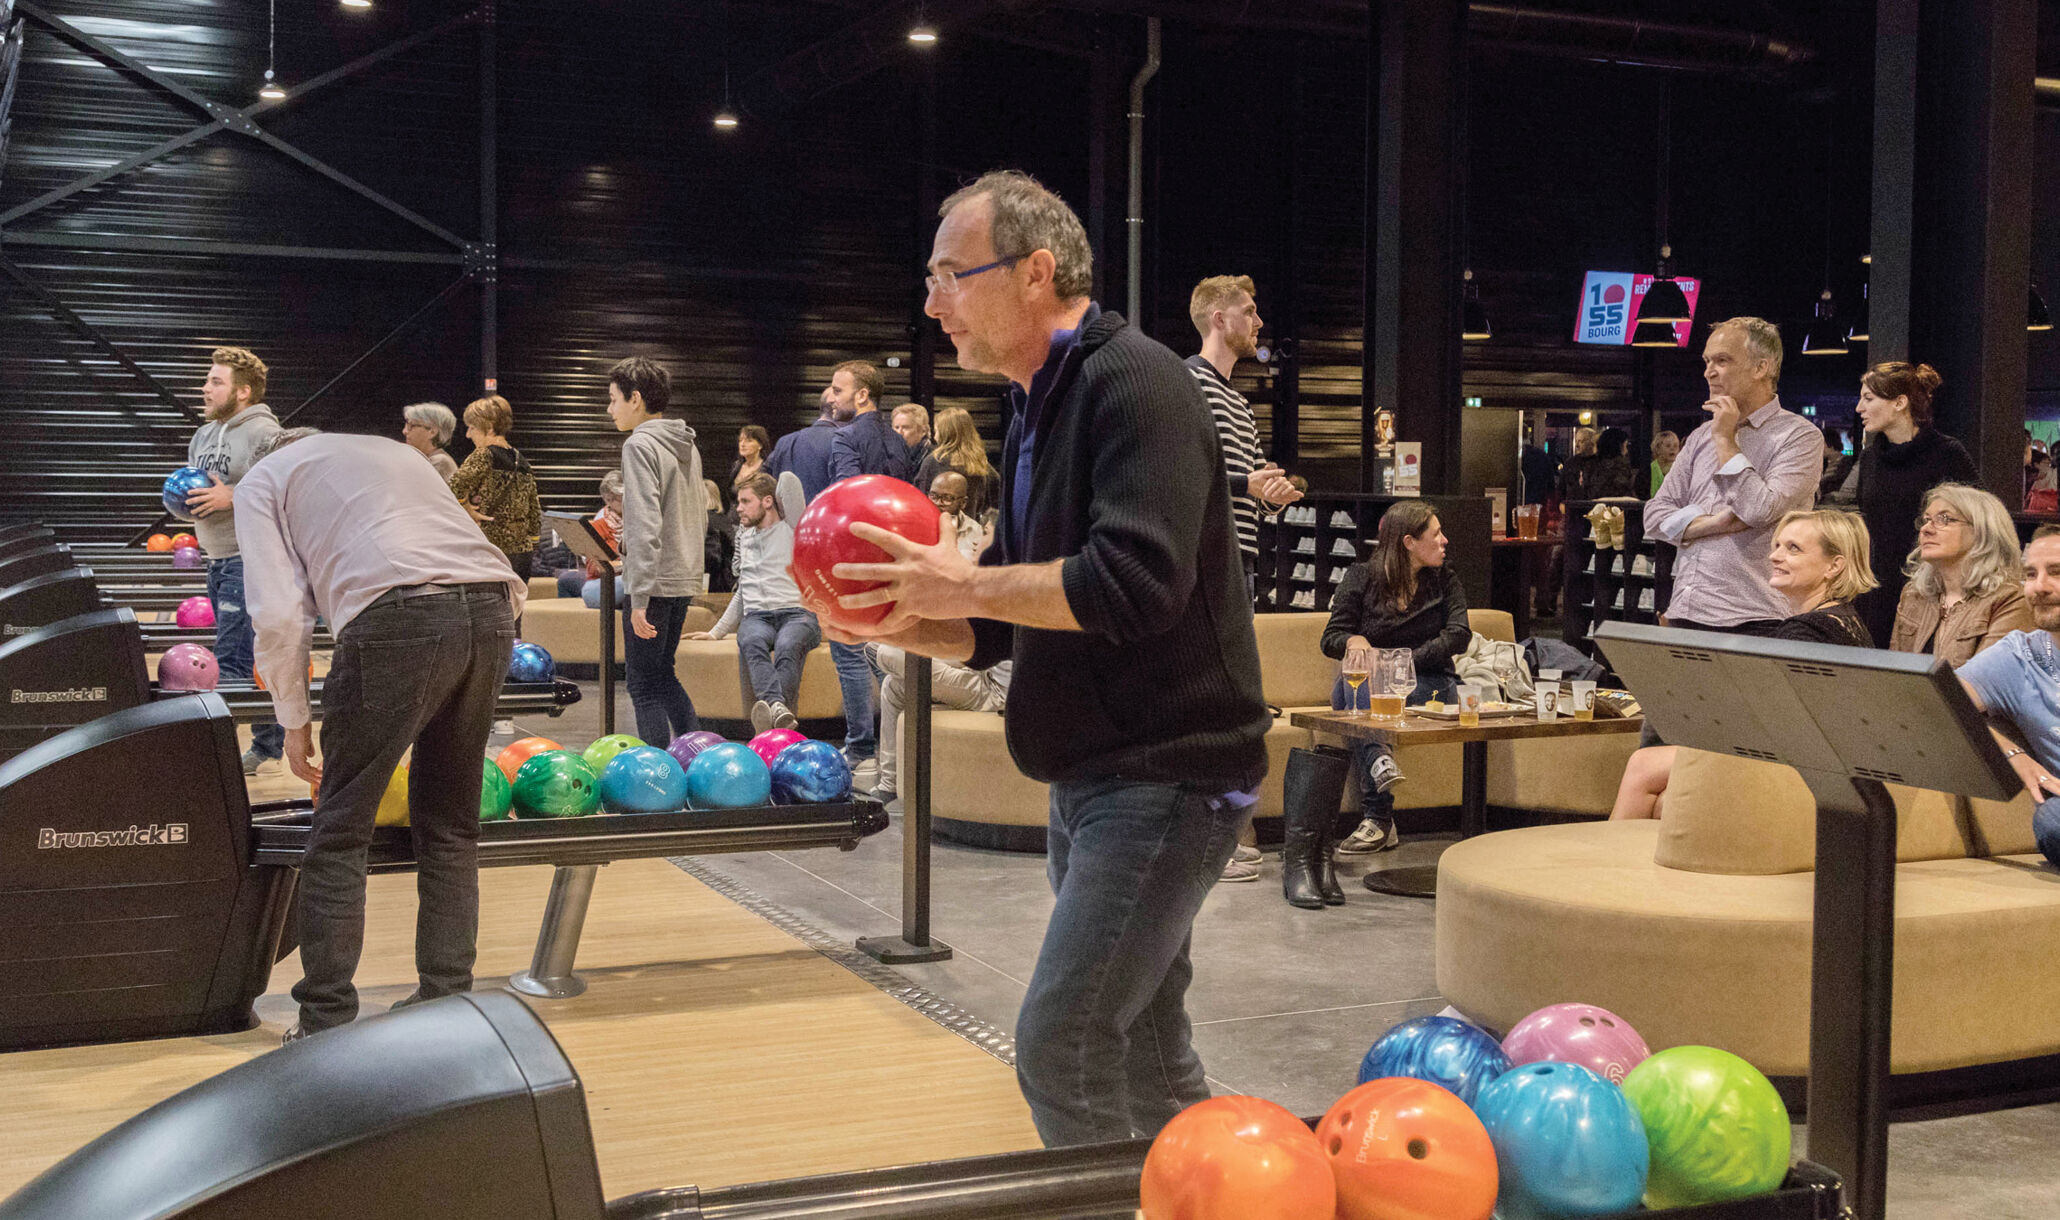 1055 Bourg, Bourg En Bresse, France - Customers Bowling-3